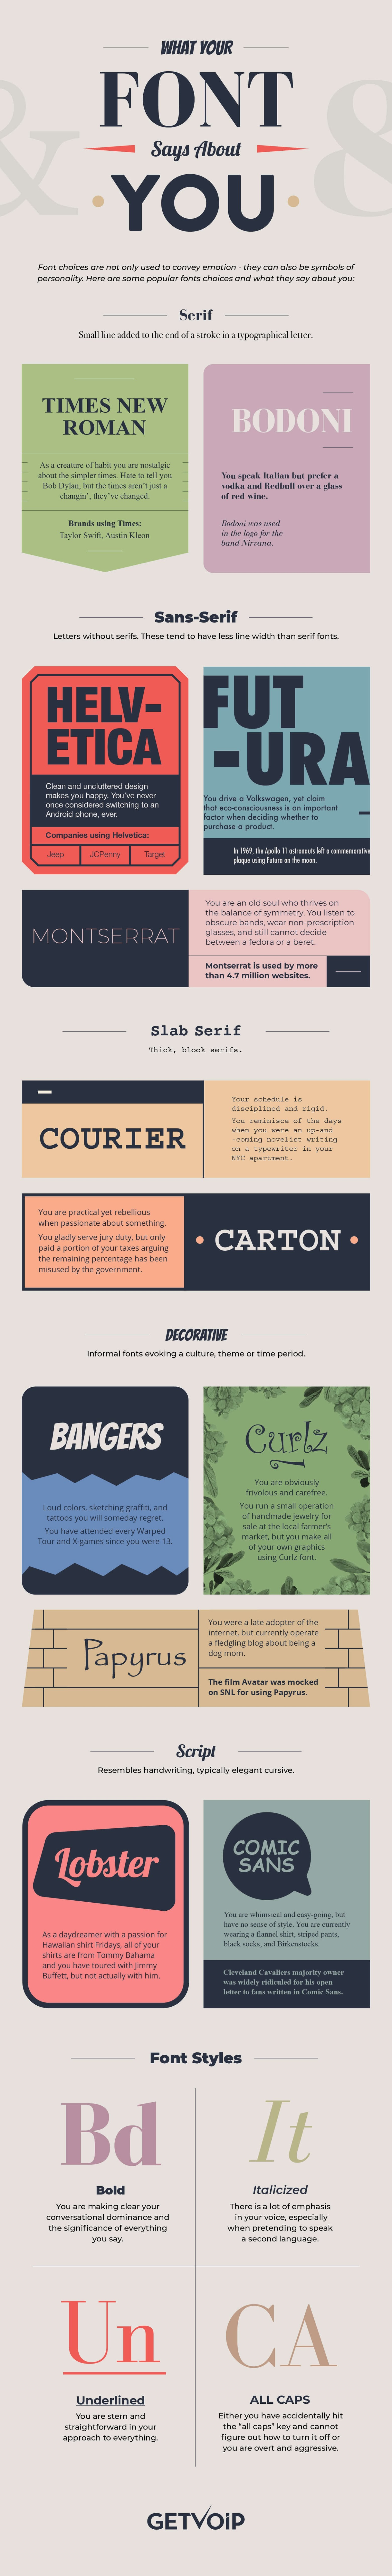 What Your Font Choices Say About You - #infographic